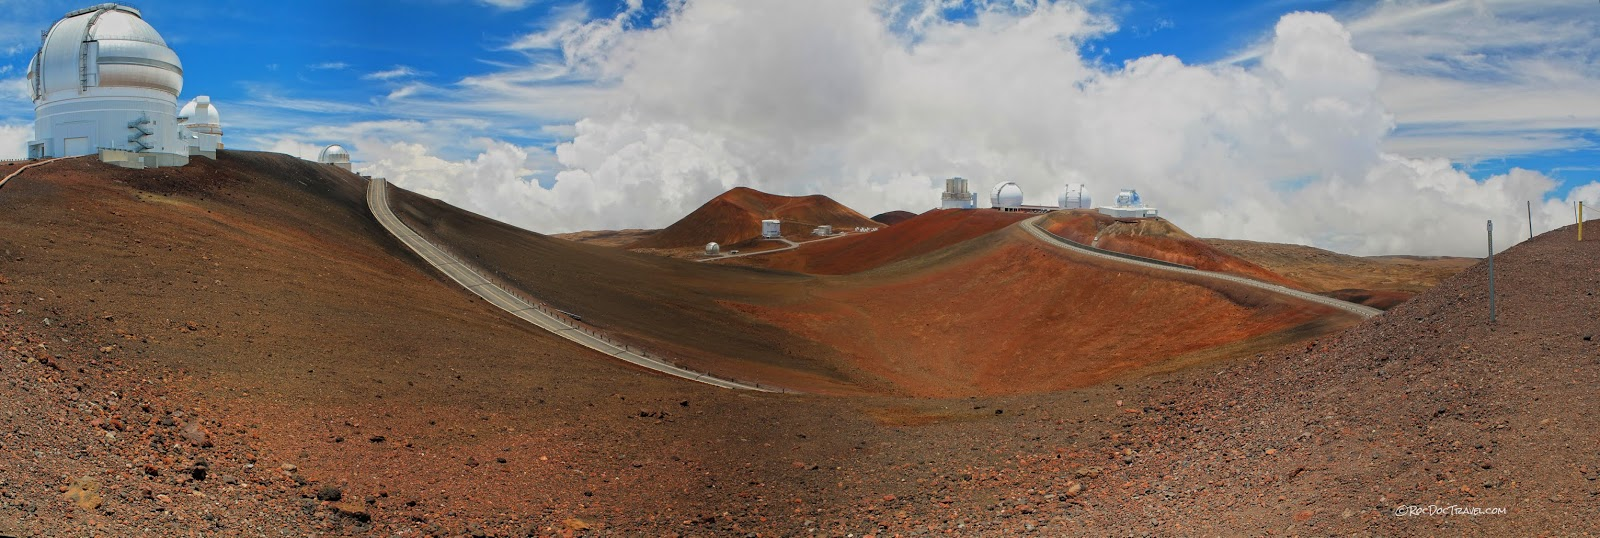 Mauna Kea volcano Hawaii summit geology travel trip observatory telescope copyright RocDocTravel.com